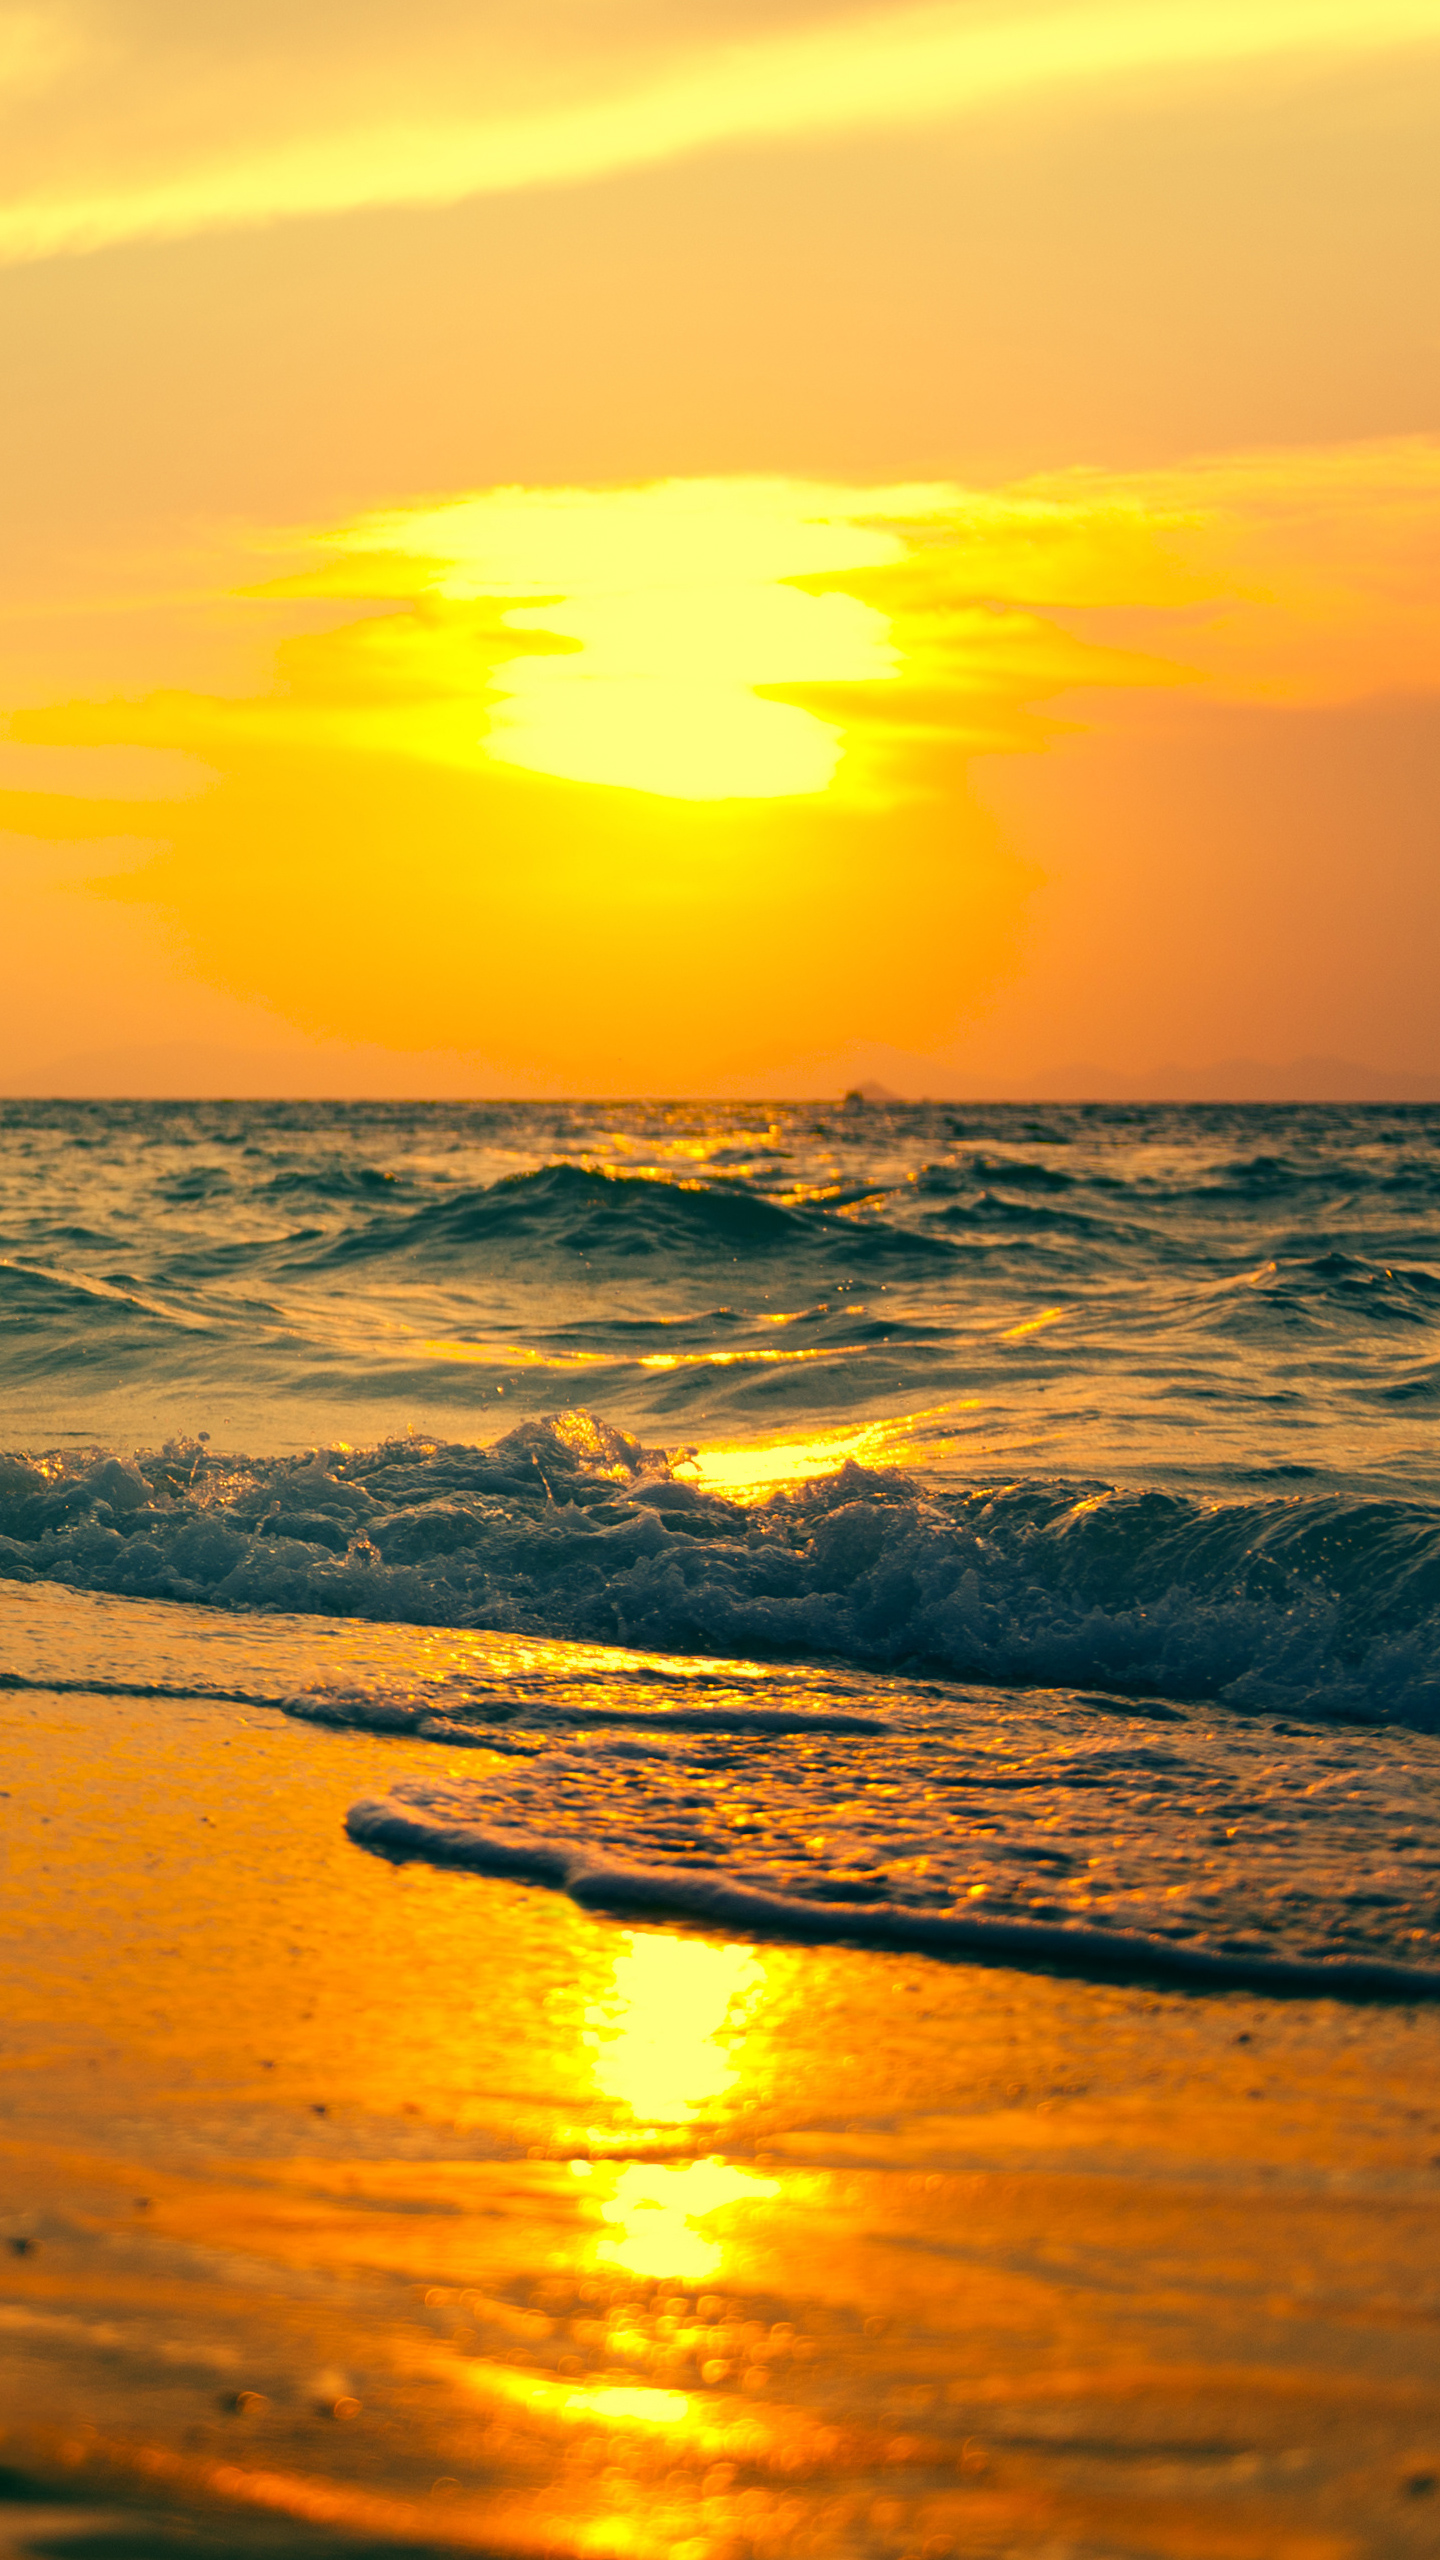 4k Fall Wallpaper For Phone Samsung Galaxy S7 Sunset Wallpaper Gallery Yopriceville